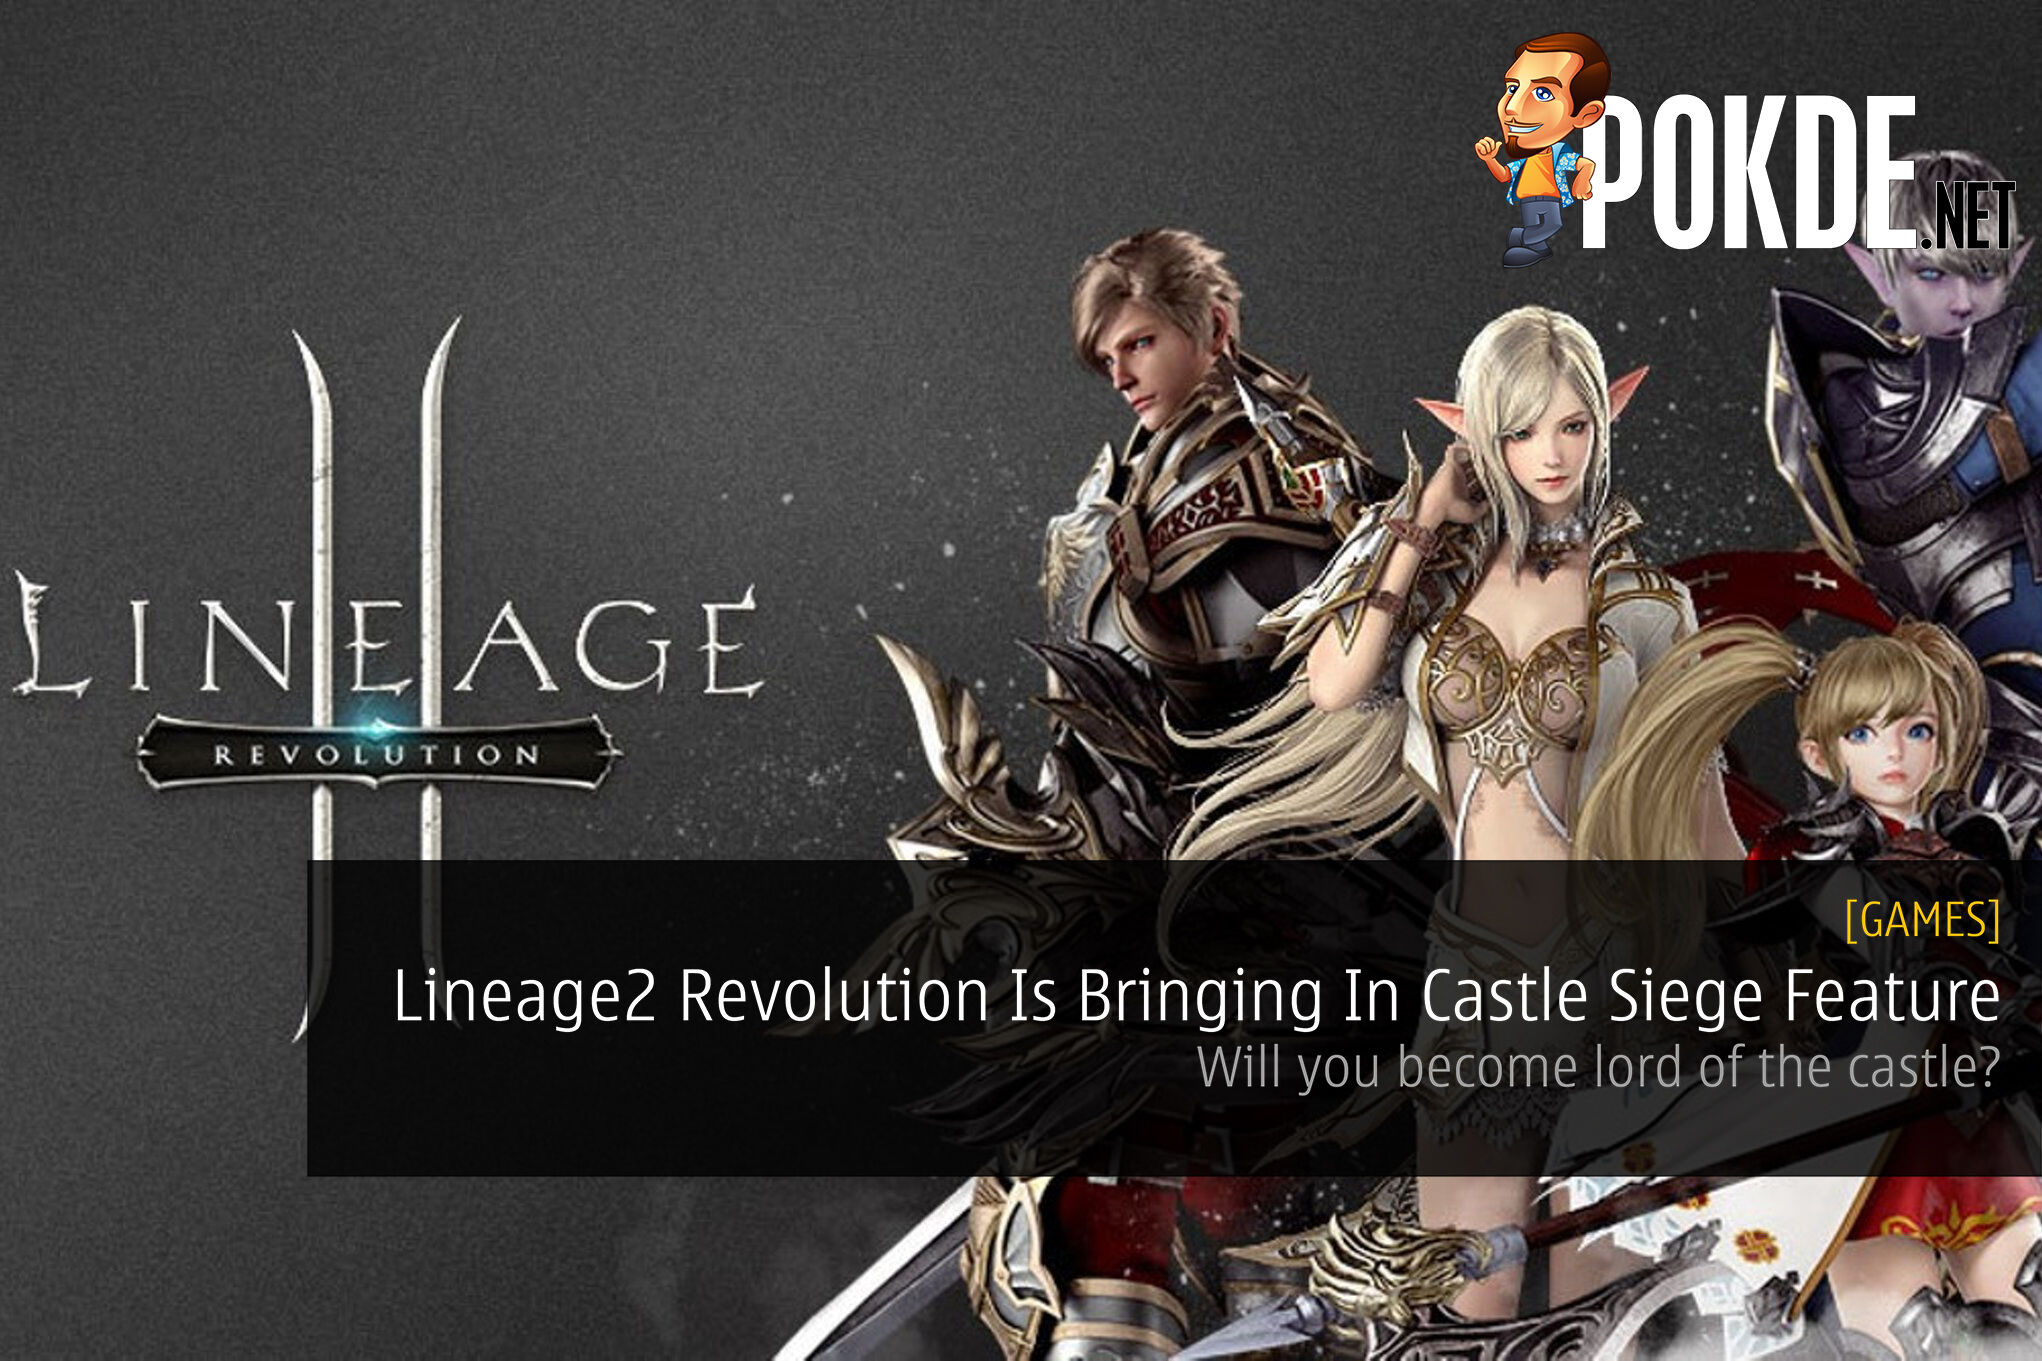 Lineage2 Revolution Is Bringing In Castle Siege Feature - Will you become lord of the castle? 28